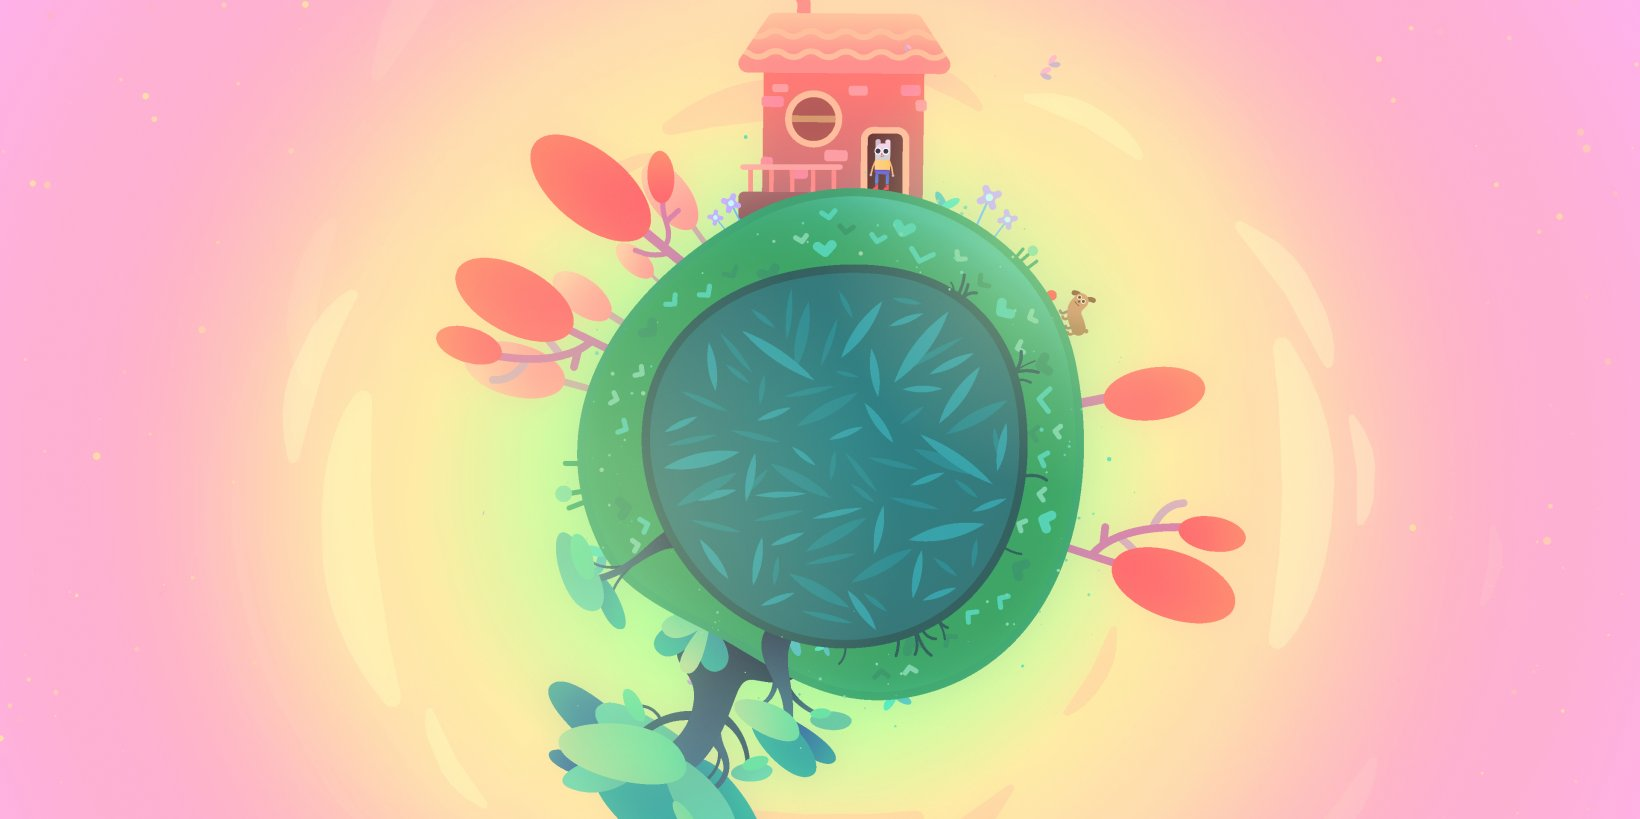 Winding Worlds is a charming and heartfelt adventure-puzzler available now on Apple Arcade